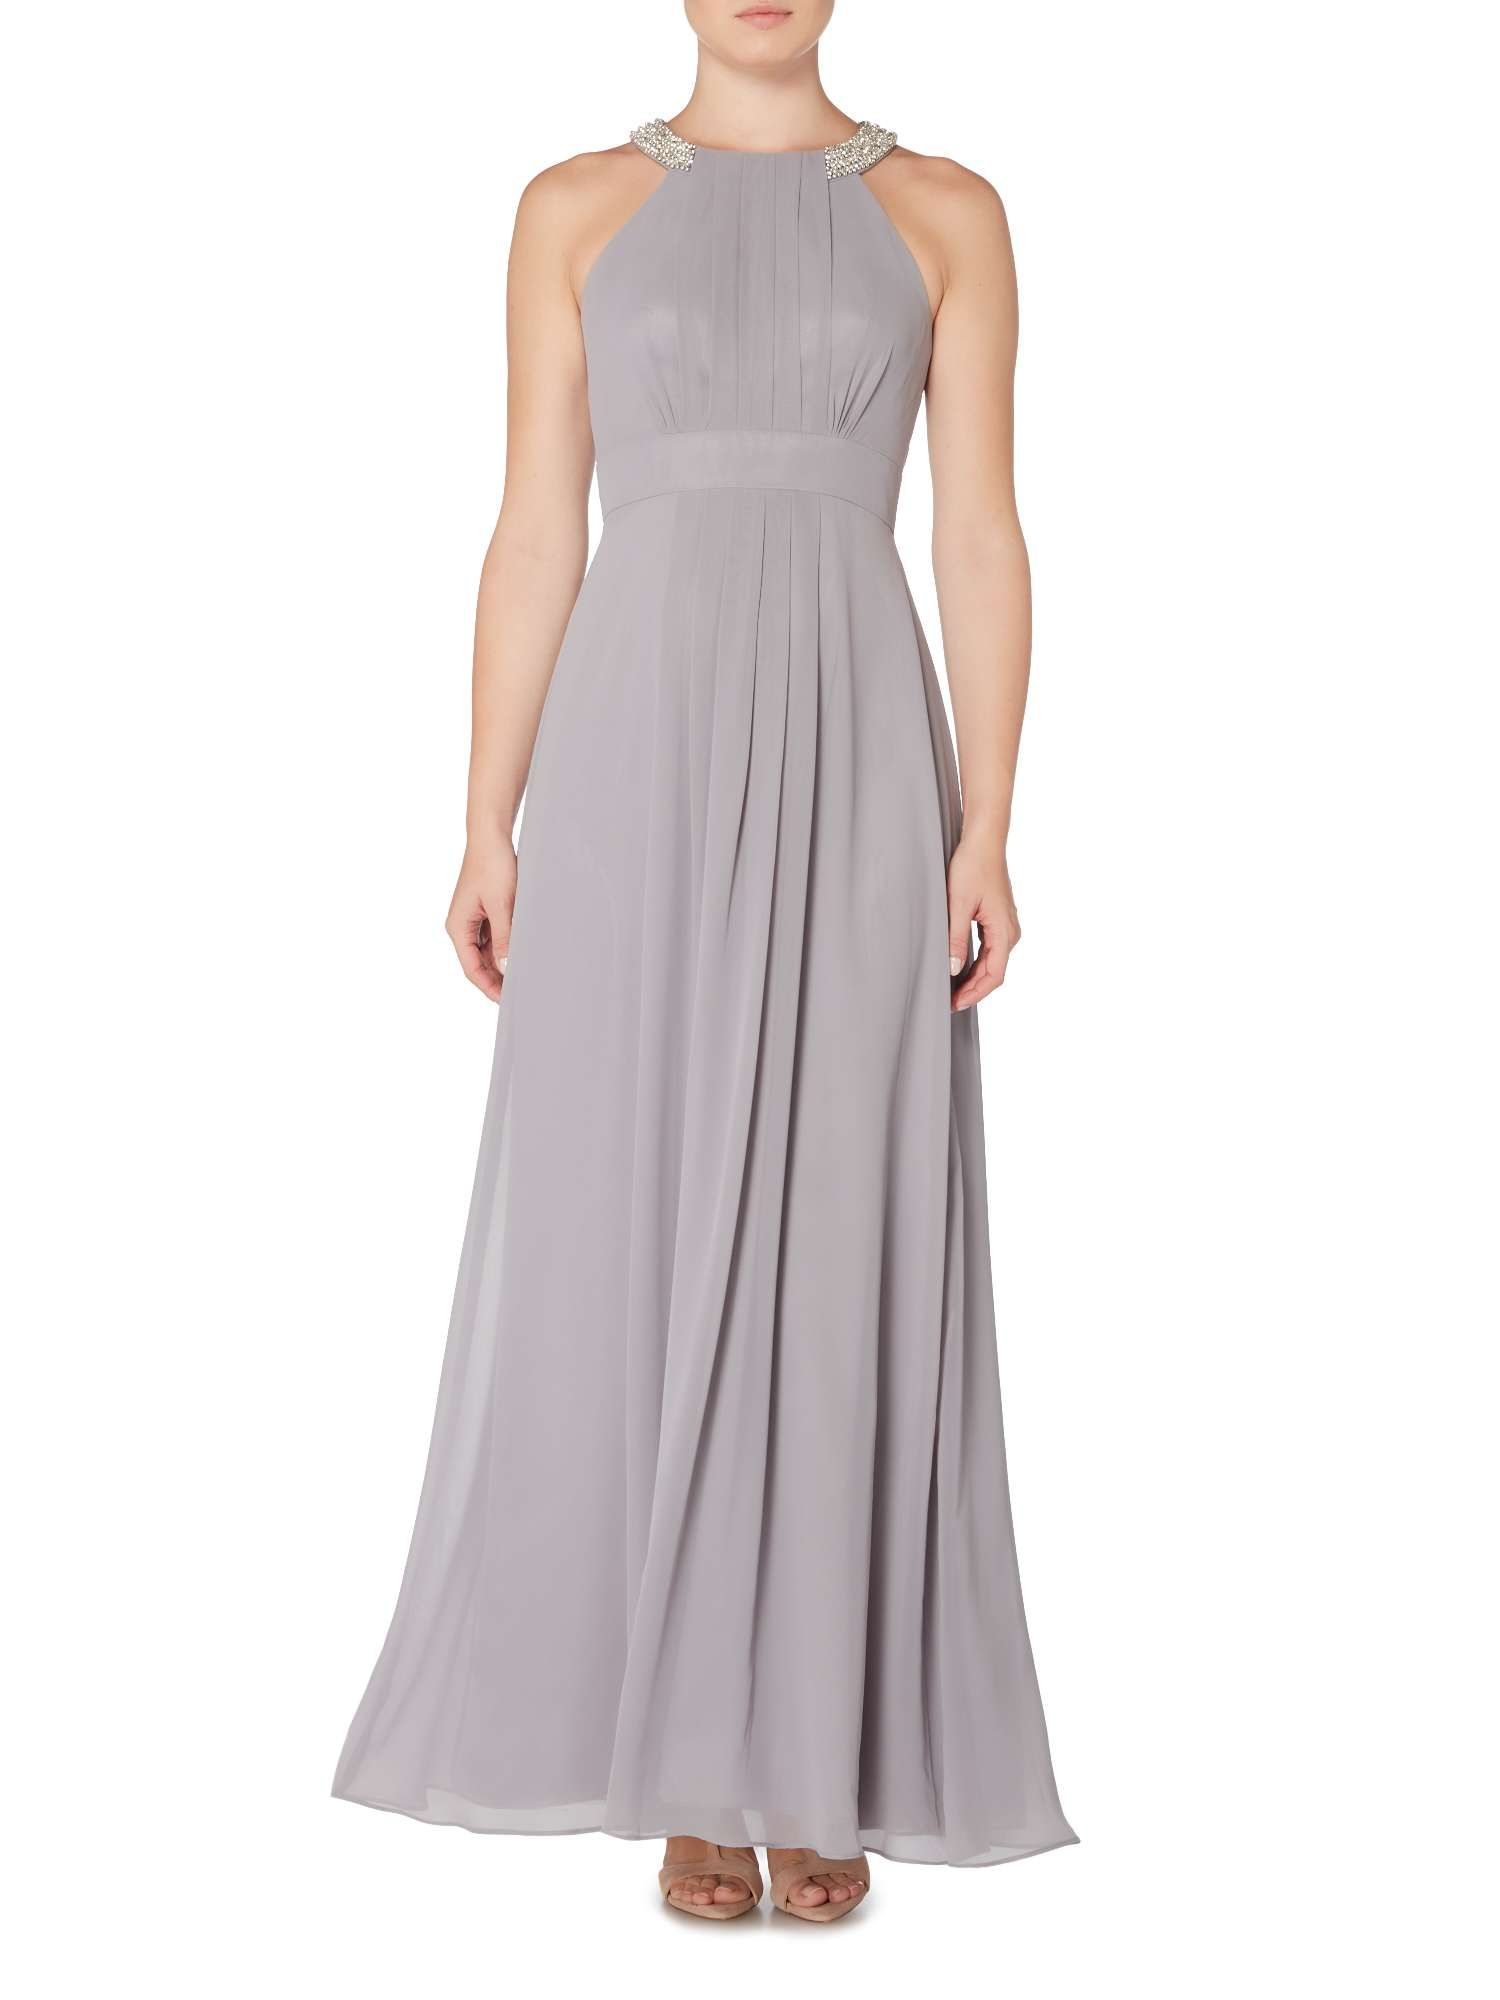 Buy your eliza j chiffon gown with crystal halterneck online now buy your eliza j chiffon gown with crystal halterneck online now at house of fraser ombrellifo Image collections